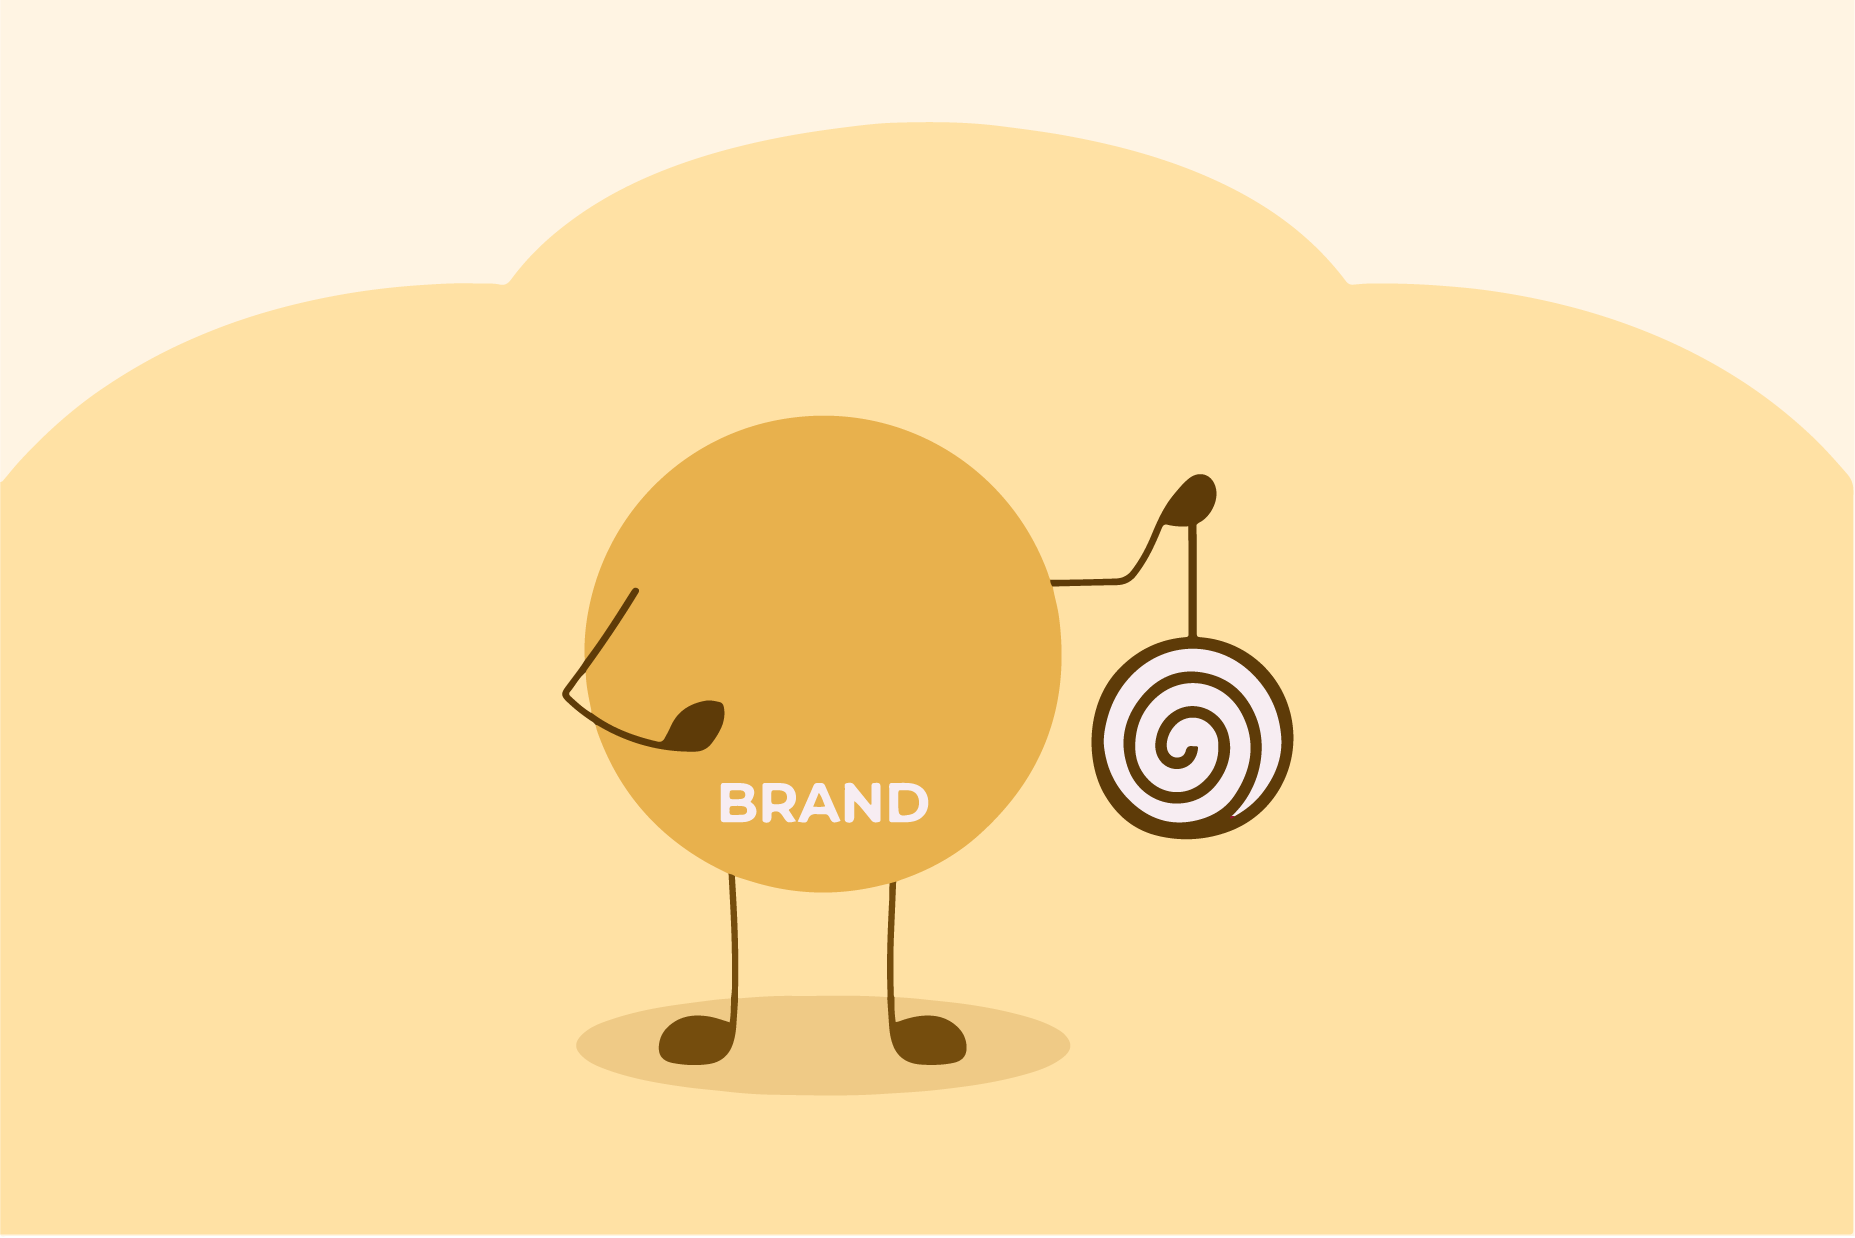 Branding articles, how to build a brand, building a brand, starting a brand.